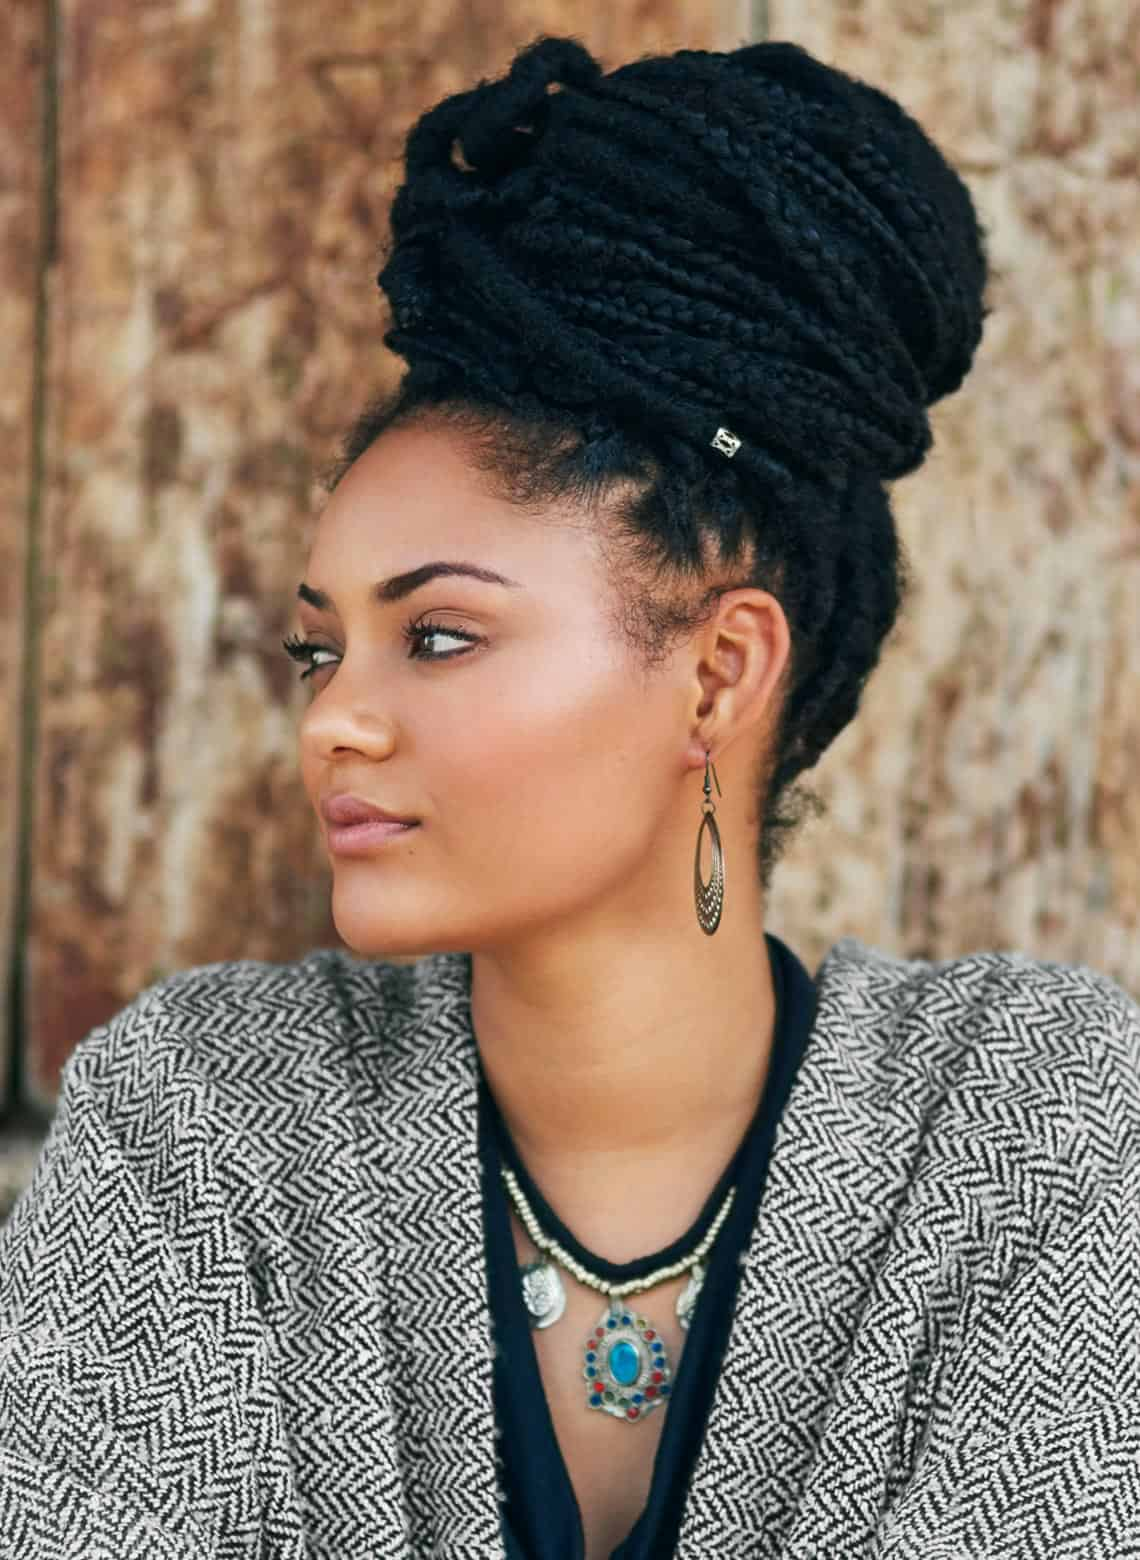 woman with large braided bun